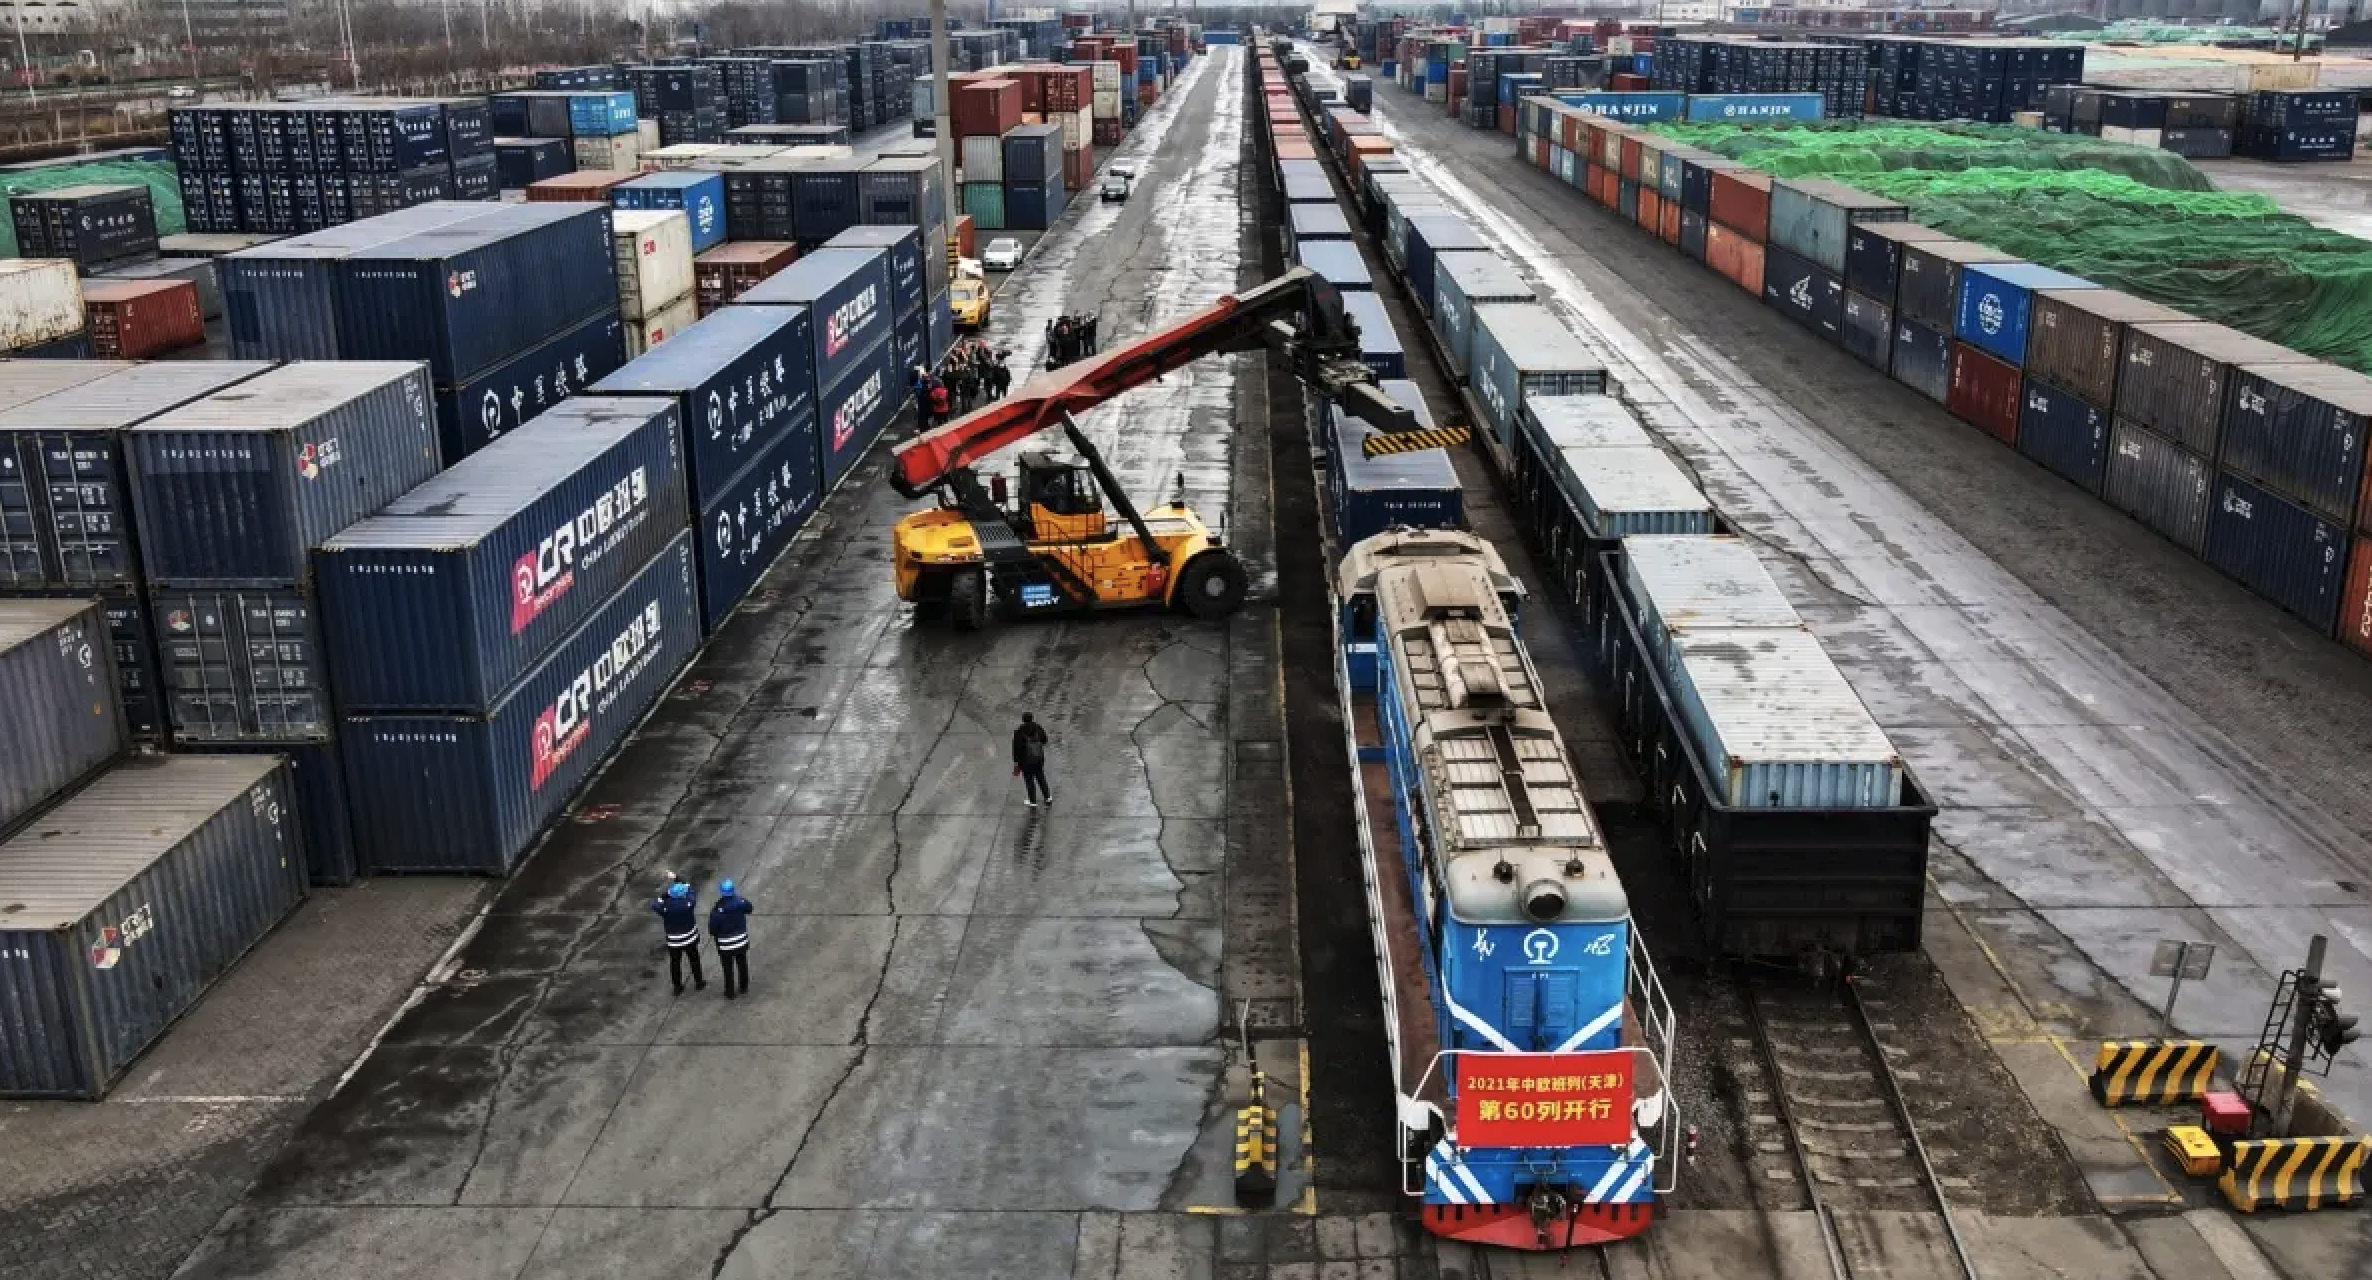 Freight train trips between China and Europe soared 70 percent on a yearly basis to 3,345 rides in the first quarter of this year